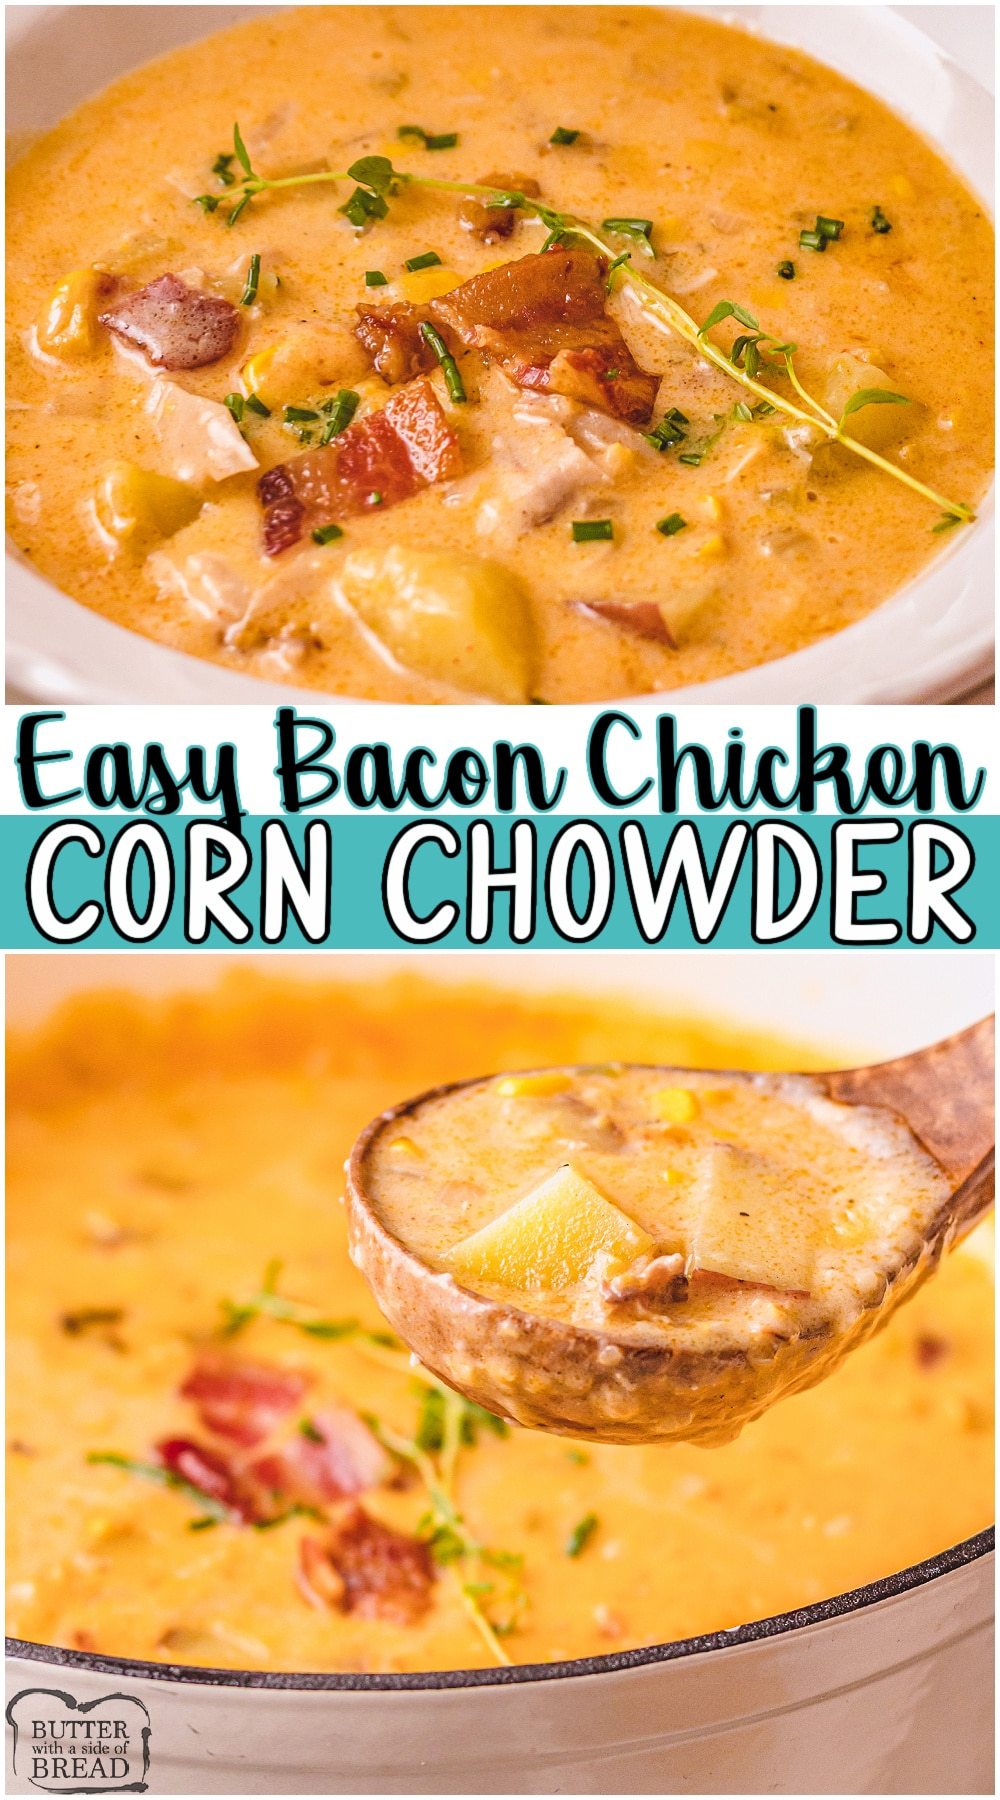 Chicken and corn chowder recipe made with sweet corn, potatoes, chicken, bacon, and cheese. Easy to make creamy chowder perfect for Fall dinners. #chowder #corn #chicken #bacon #cheese #dinner #easyrecipe from BUTTER WITH A SIDE OF BREAD